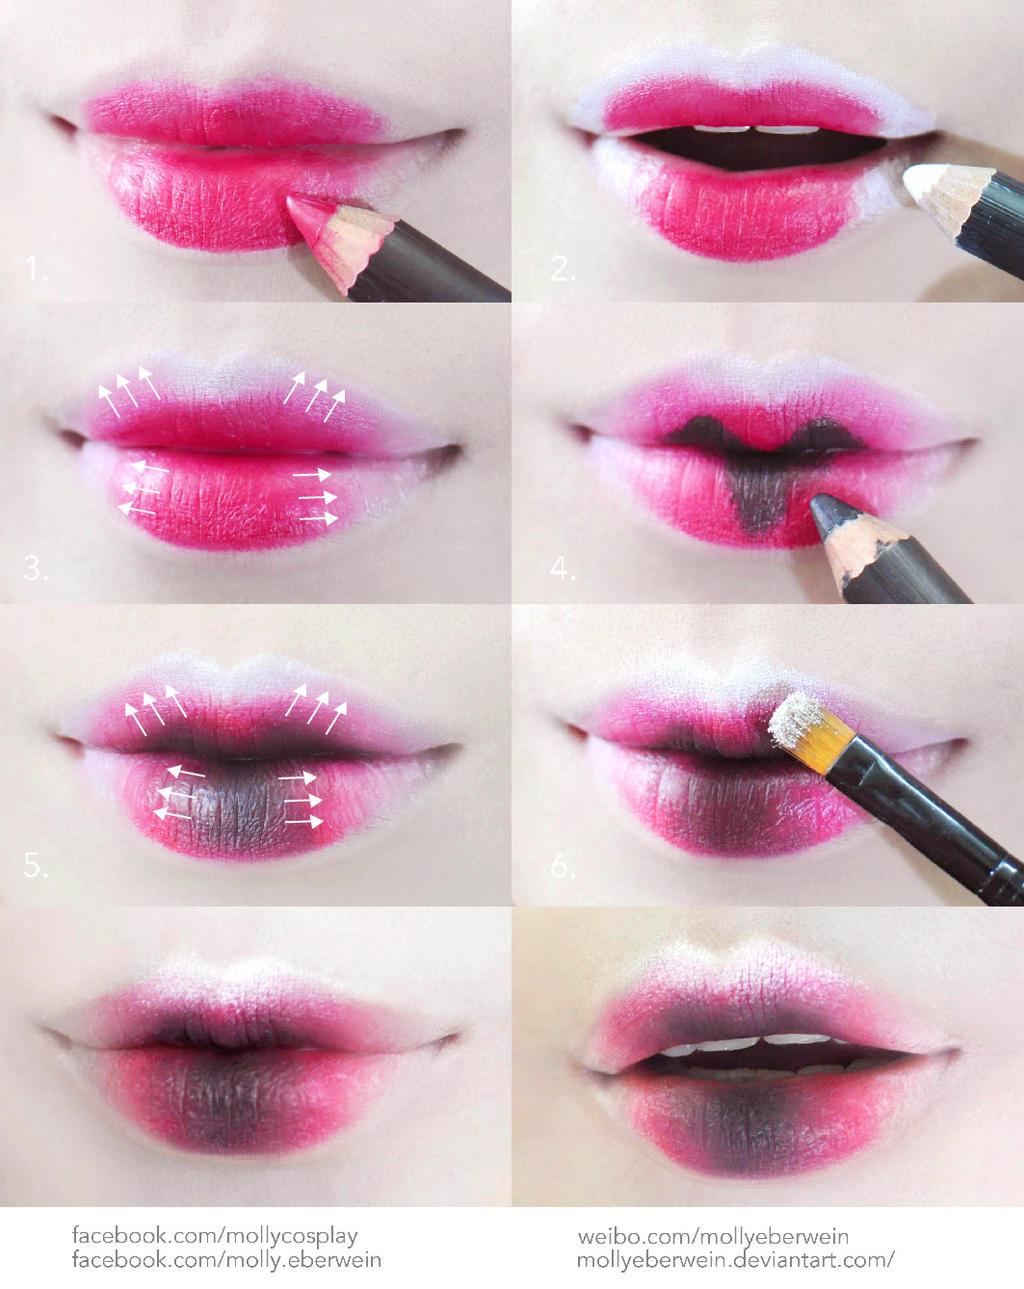 Tutorial Anime Lips Makeup 1 - Mugeek Vidalondon